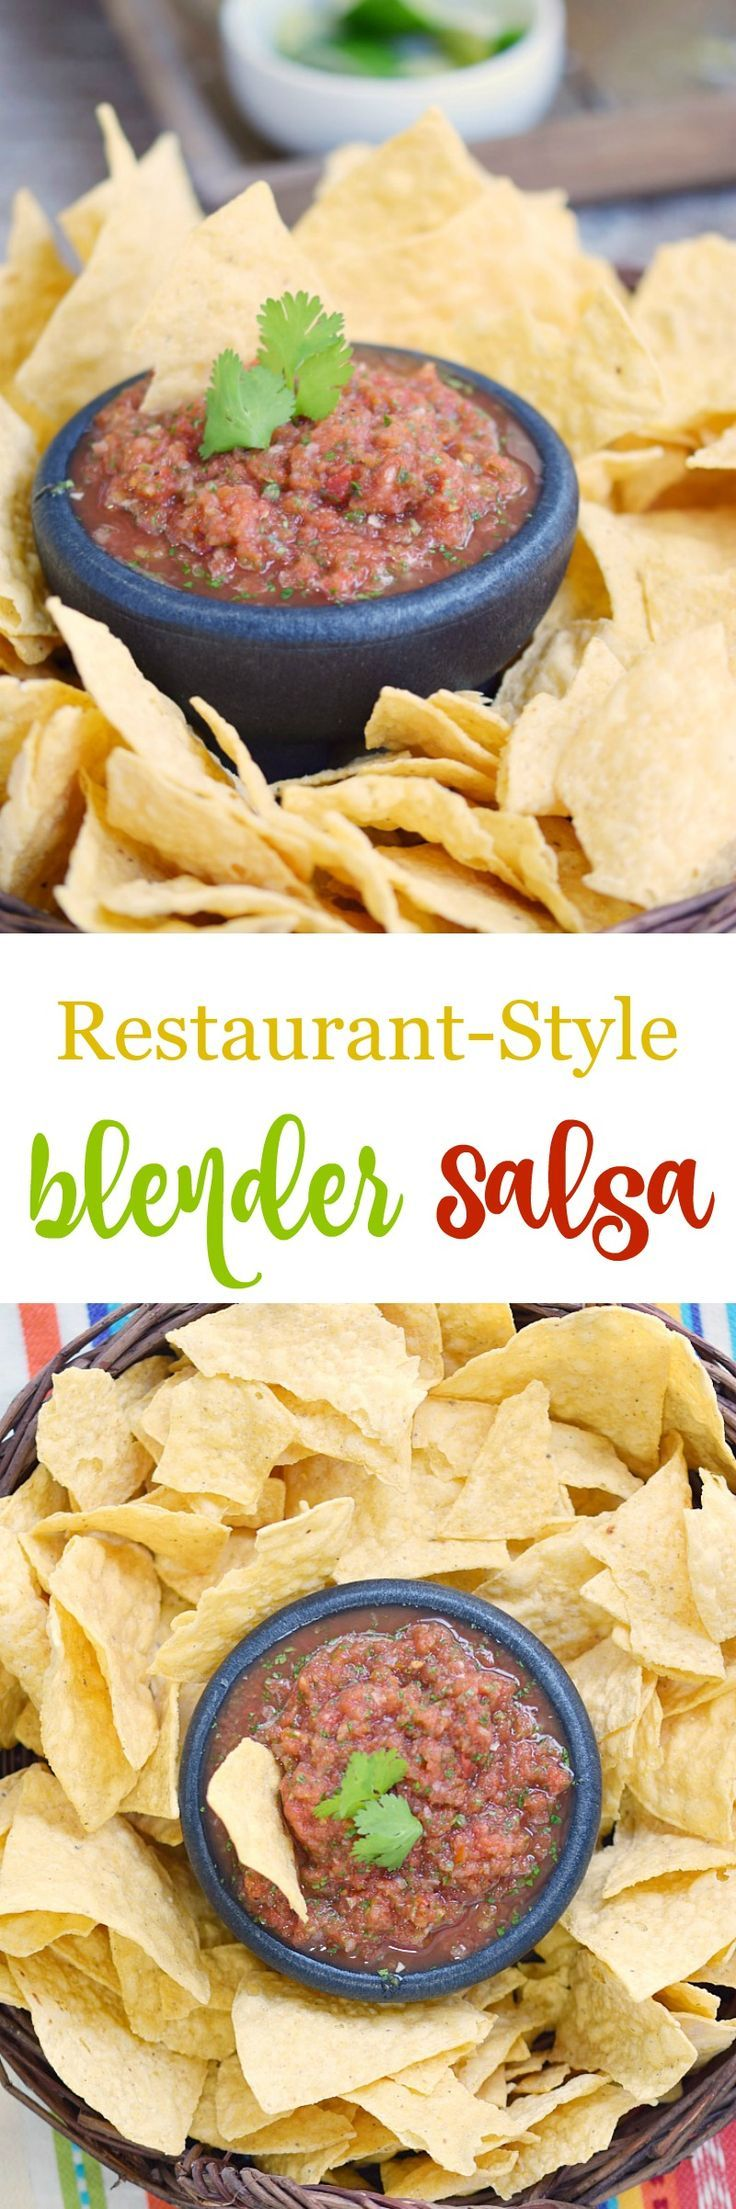 Now you can make your favorite Restaurant-Style Blender Salsa at home in minutes using simple ingredients, and it's Paleo and Whole 30 compliant!